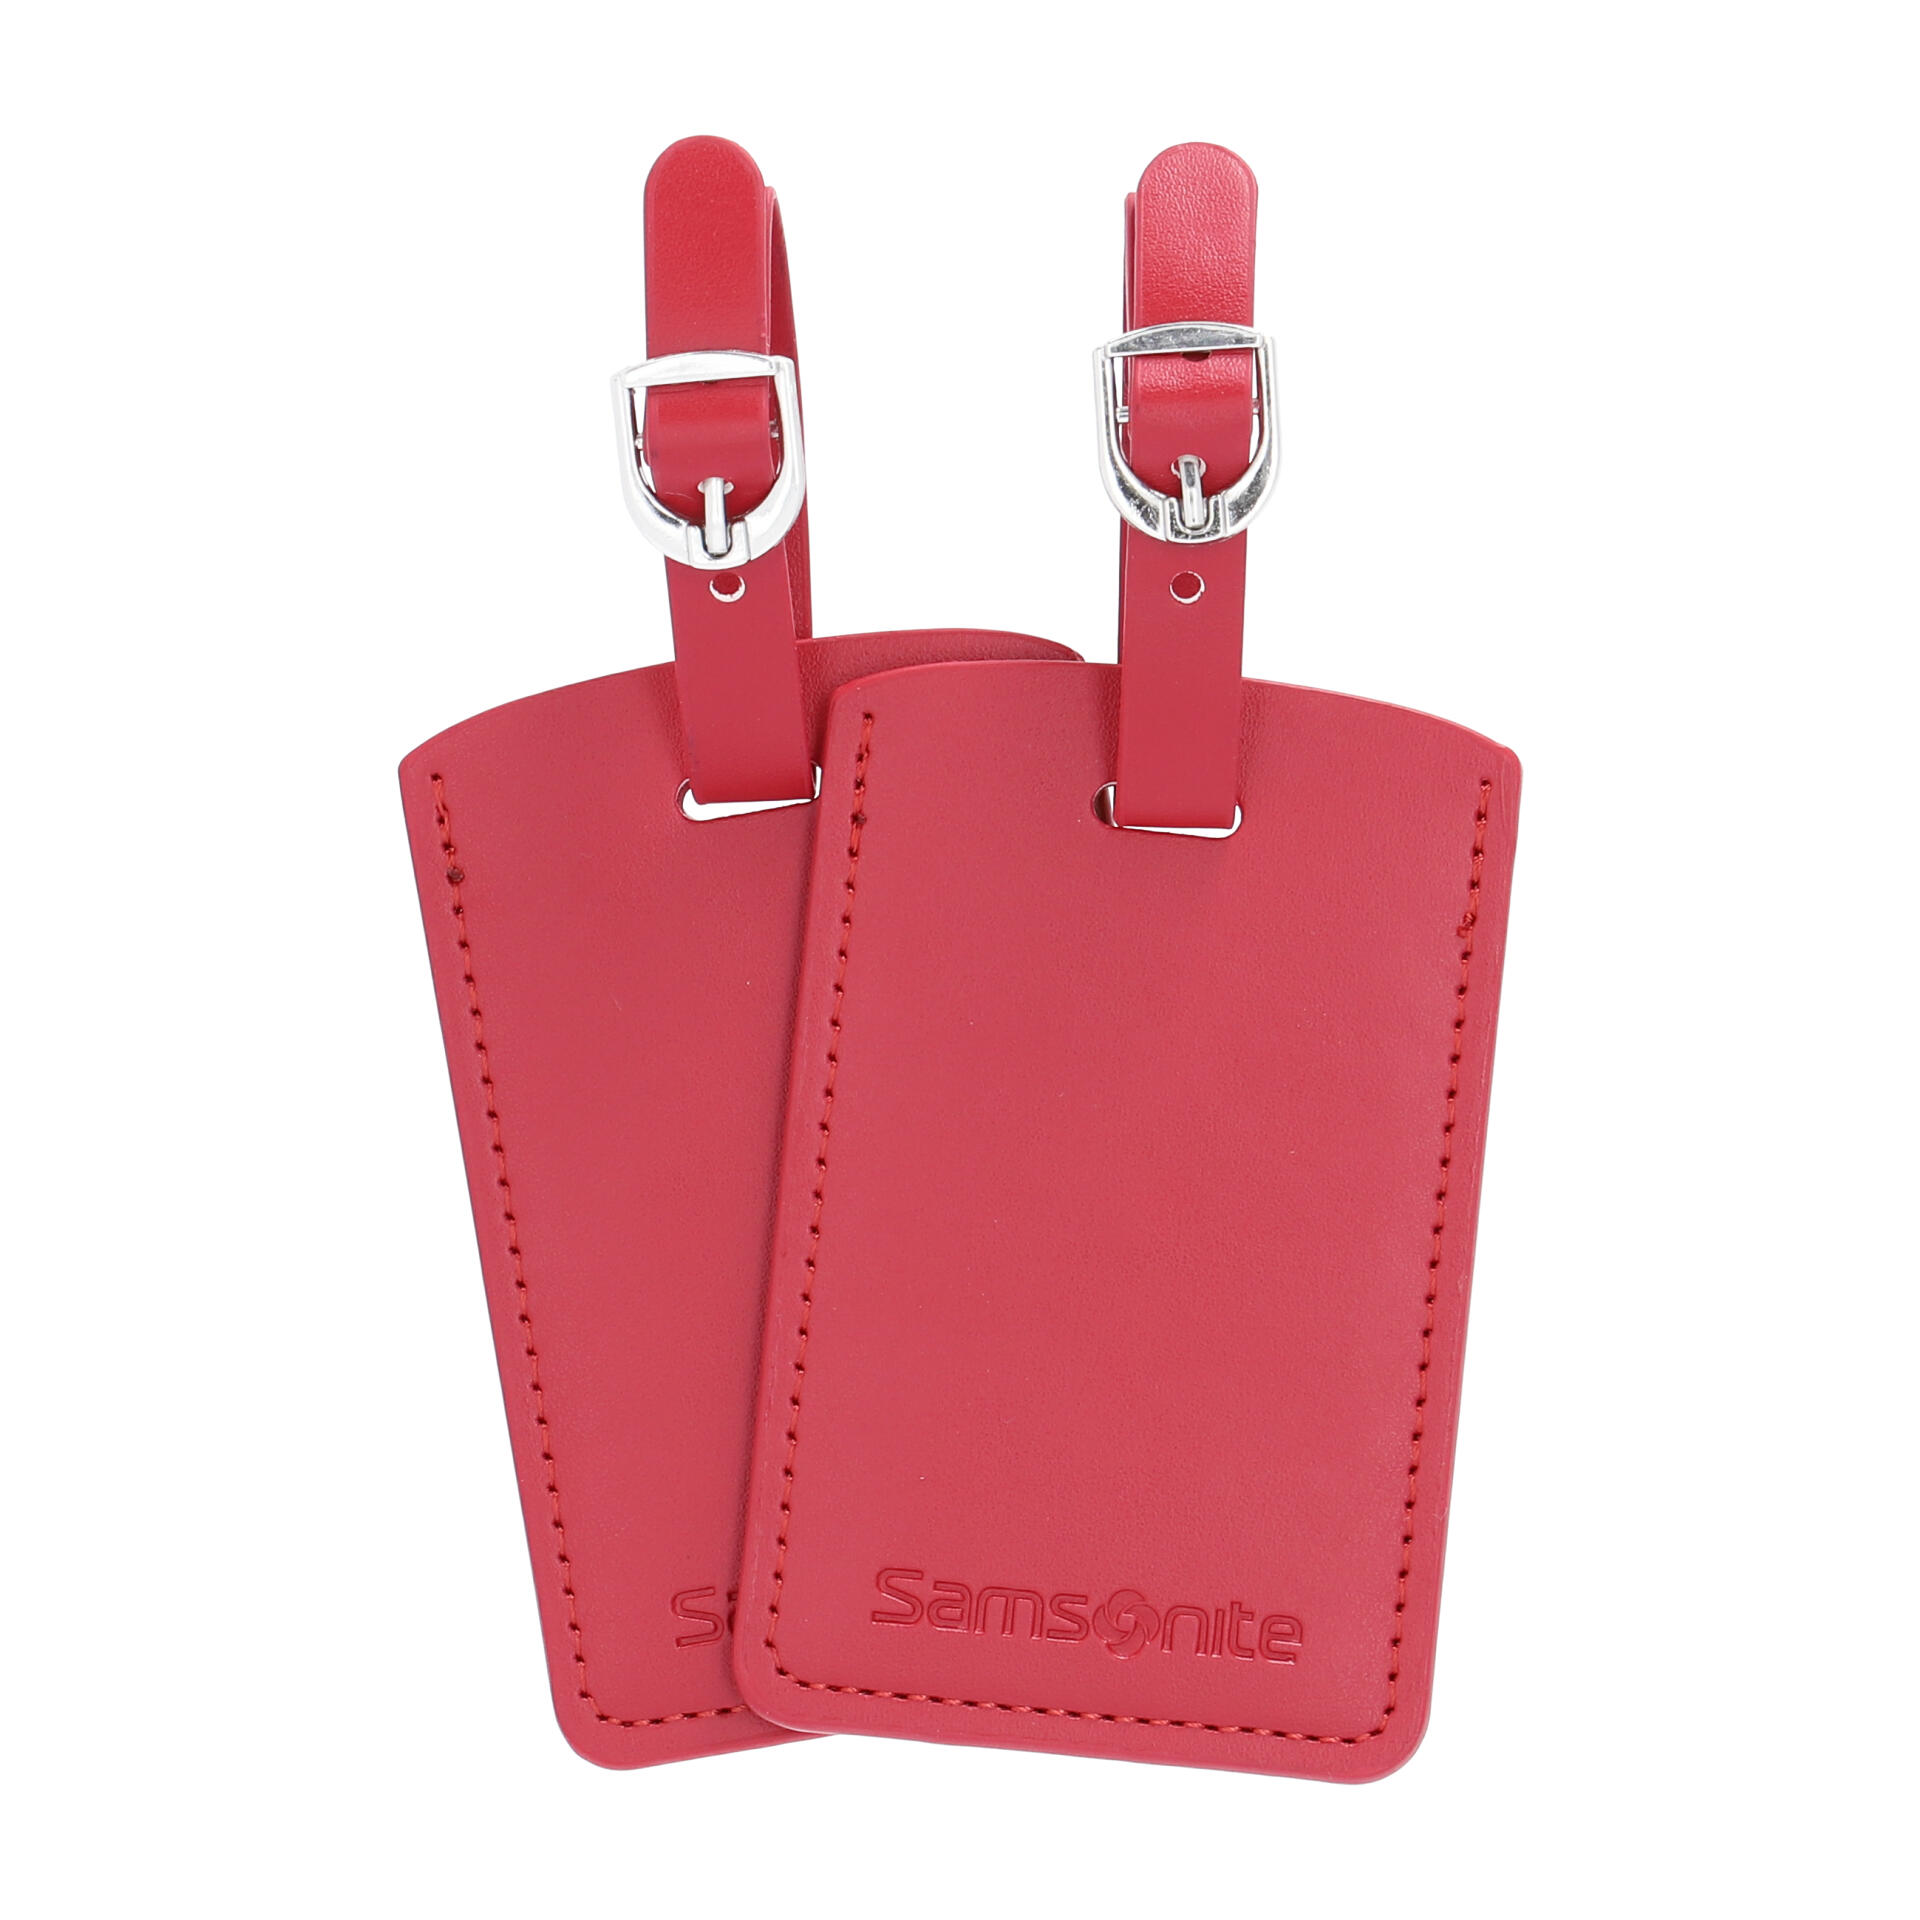 Global Travel Accessories Gepäckanhänger red